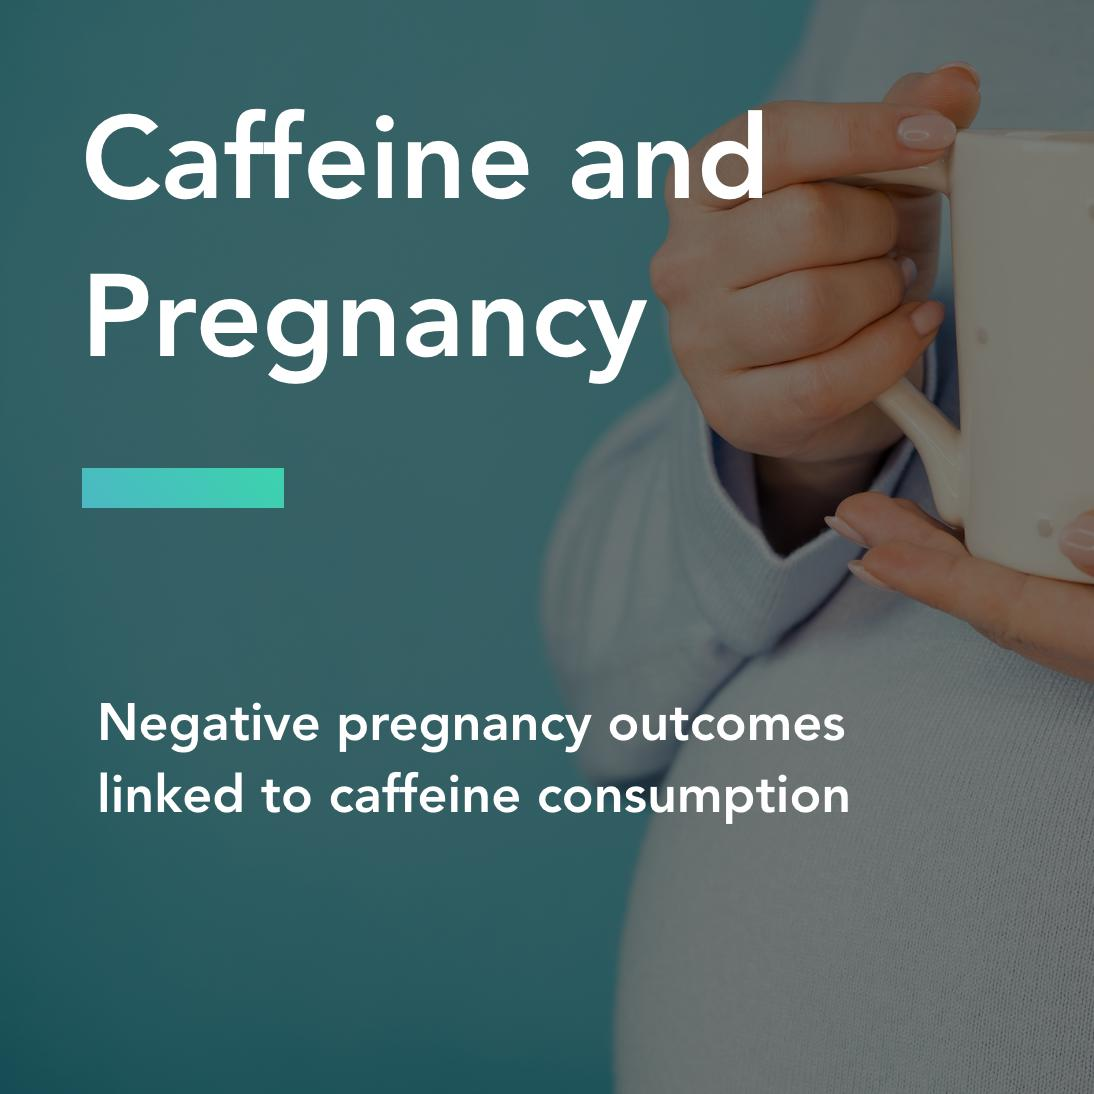 caffeine and pregnancy title